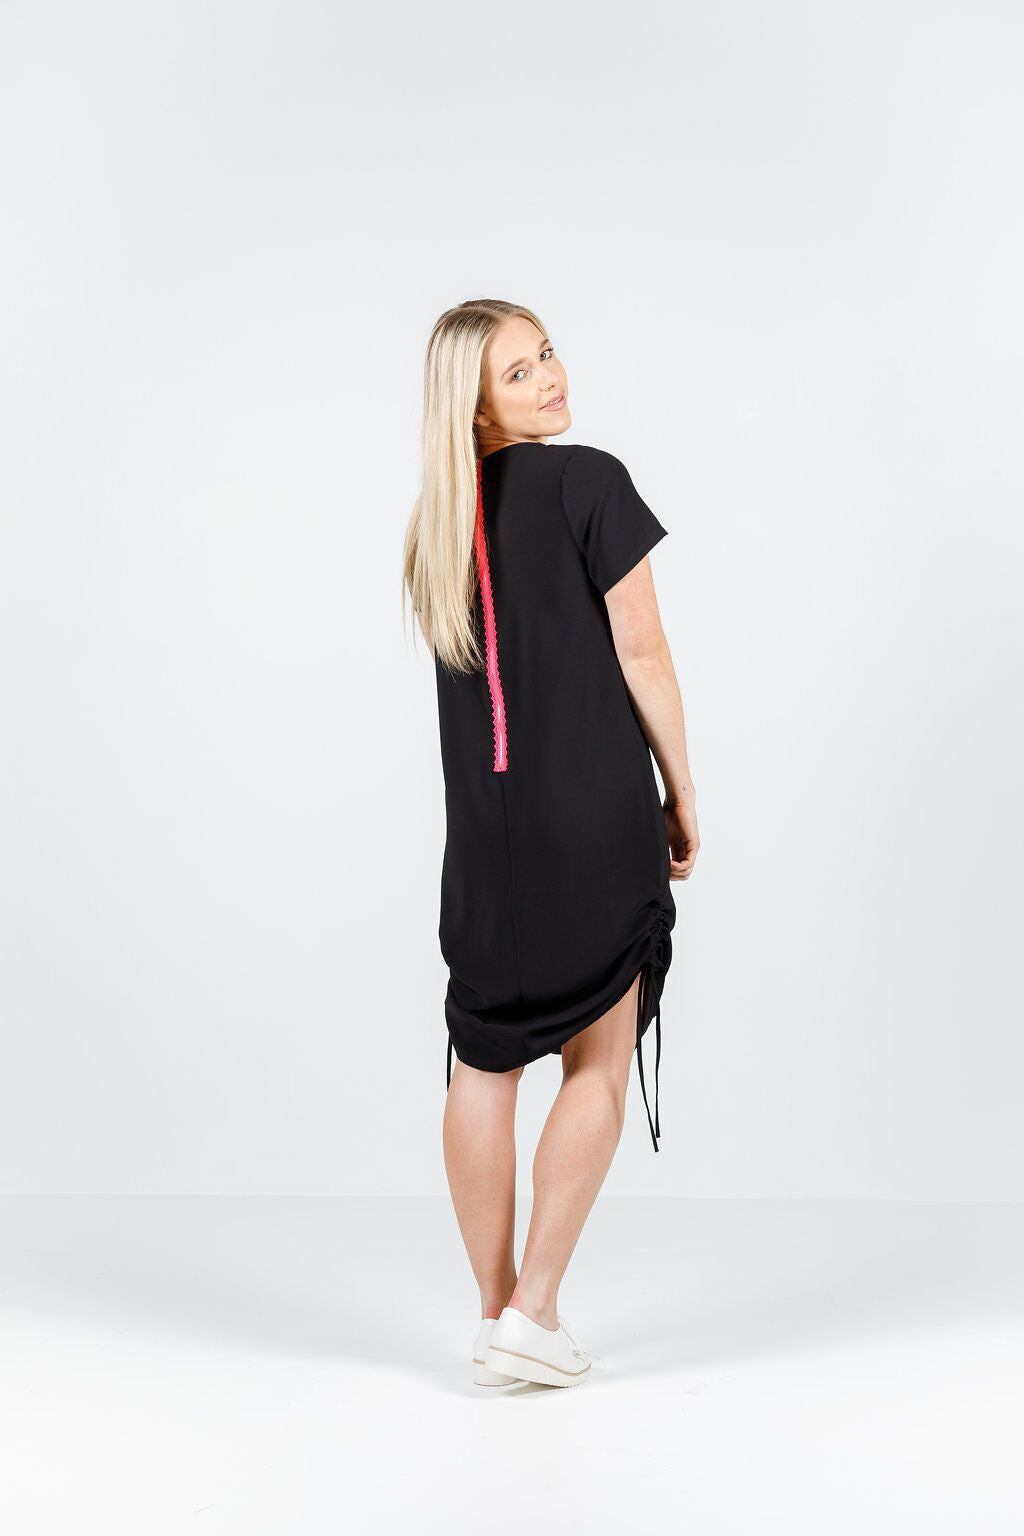 *SALE* RUCHED ZIP DRESS - Black with pink zipper